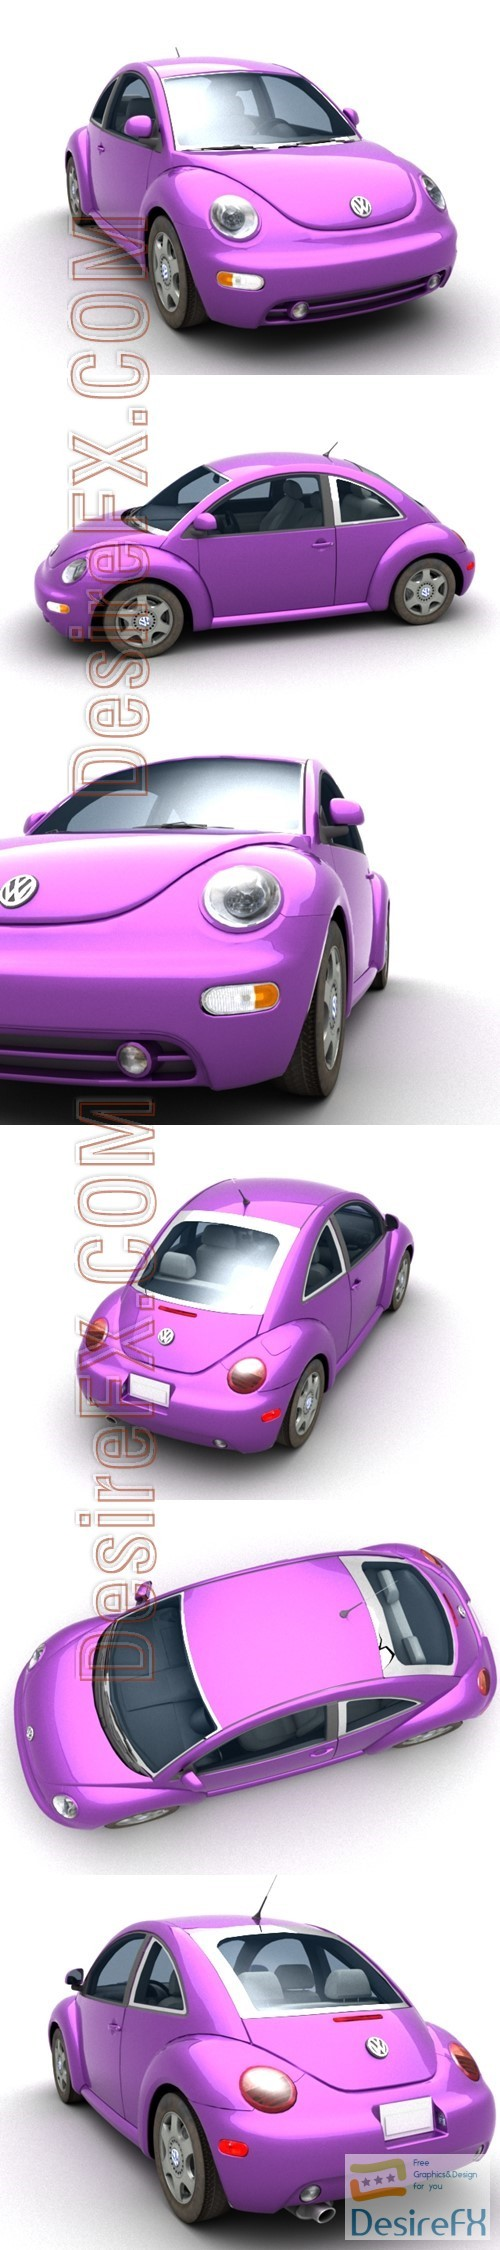 3d-models - Volkswagen Beetle 3D Model